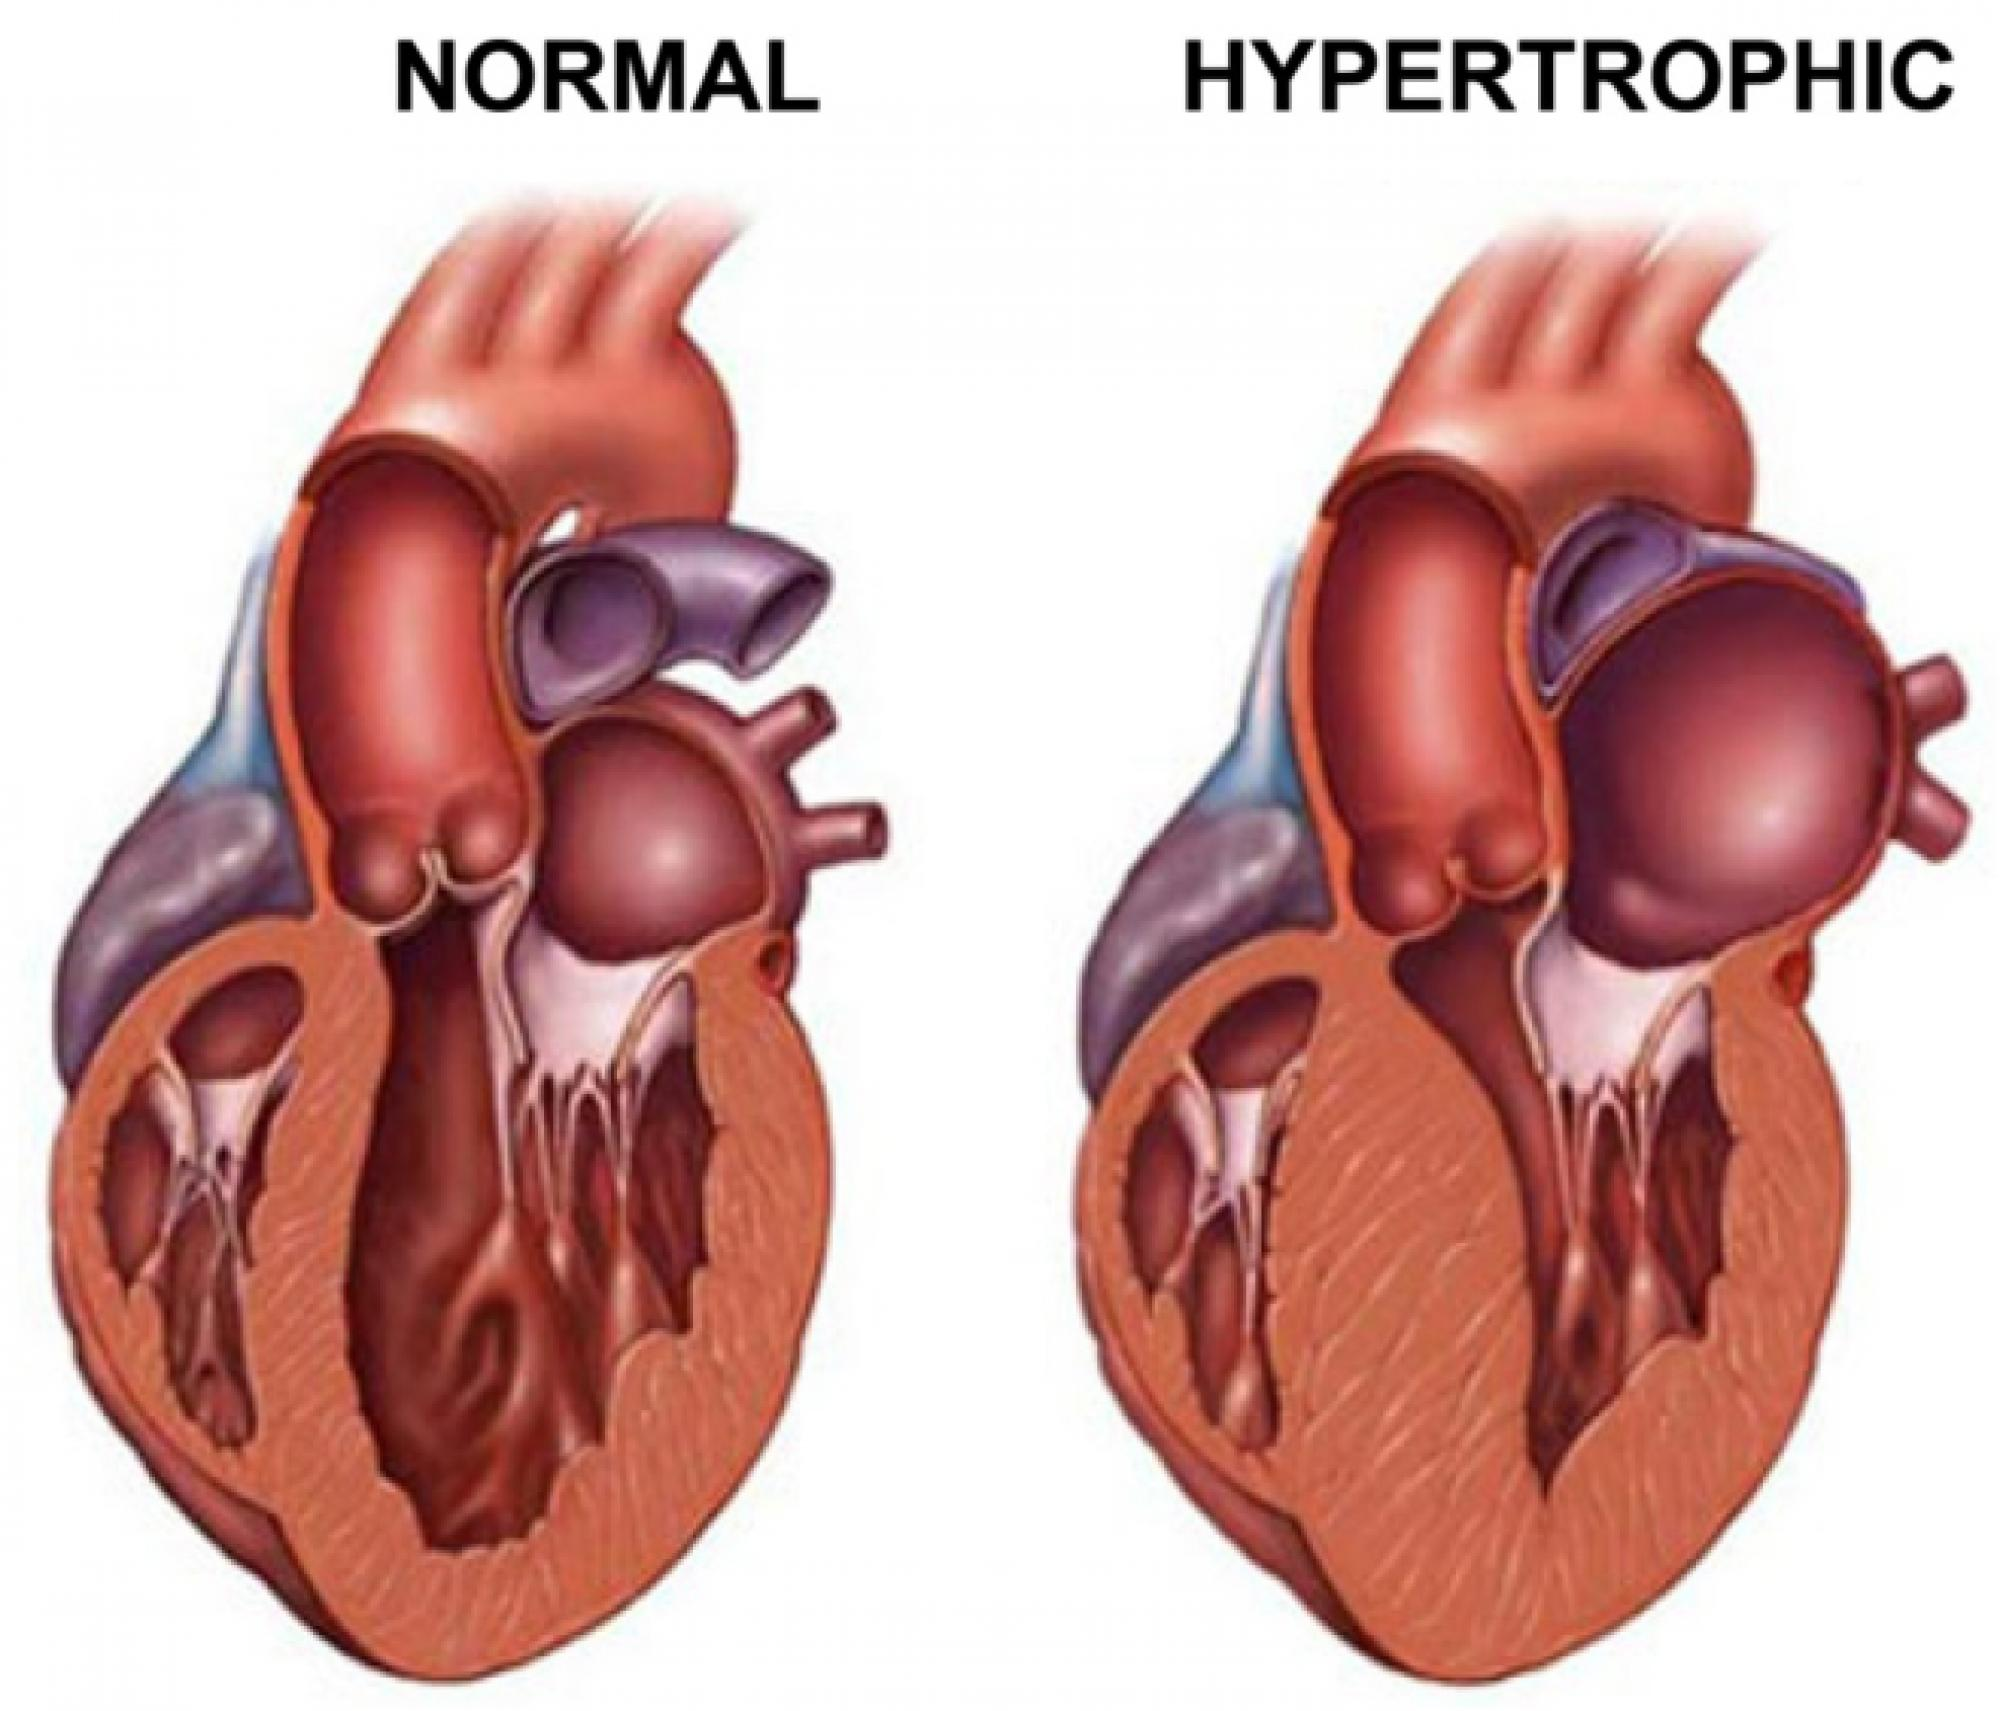 """In a hypertrophic heart, the heart muscle can become enlarged and decrease the volume of blood that the heart can pump. """"The real problem is the chamber of the heart gets very small because the wall takes up too much space,"""" explained Tardiff."""